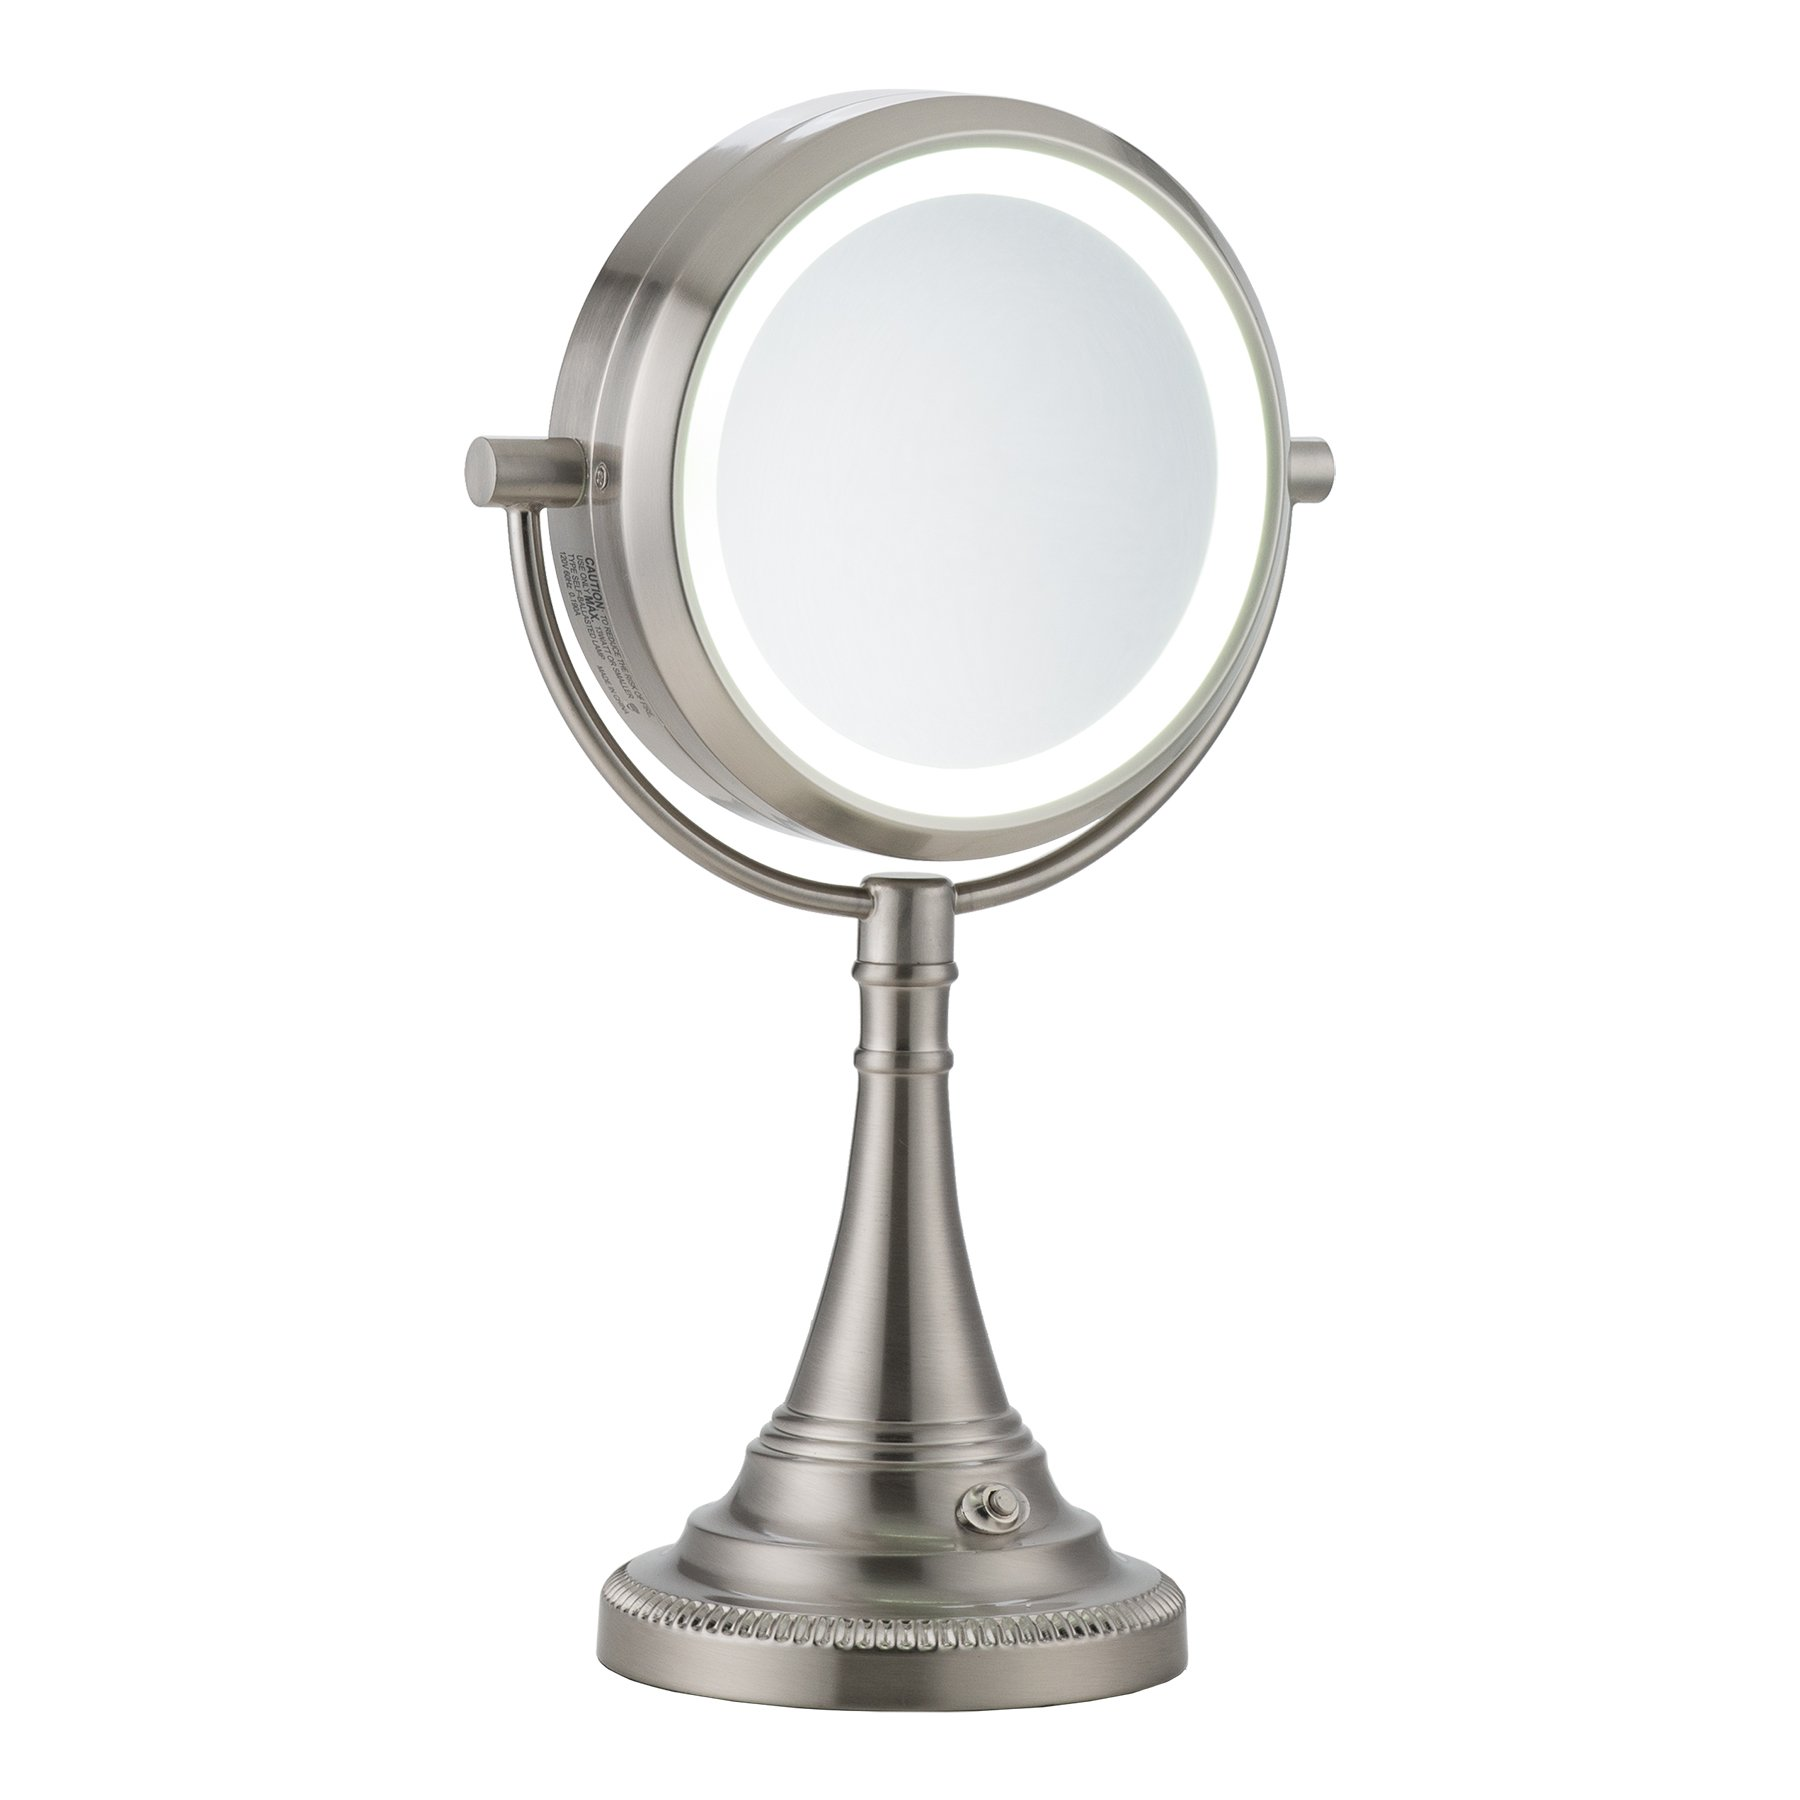 CO-Z 10x Magnifying Makeup Mirror, Elegant Vanity Magnifying Mirror with Light, Modern Dual Sided Brushed Nickel Tabletop Face Lighted Mirror with 10x Magnification for Women's Dresser